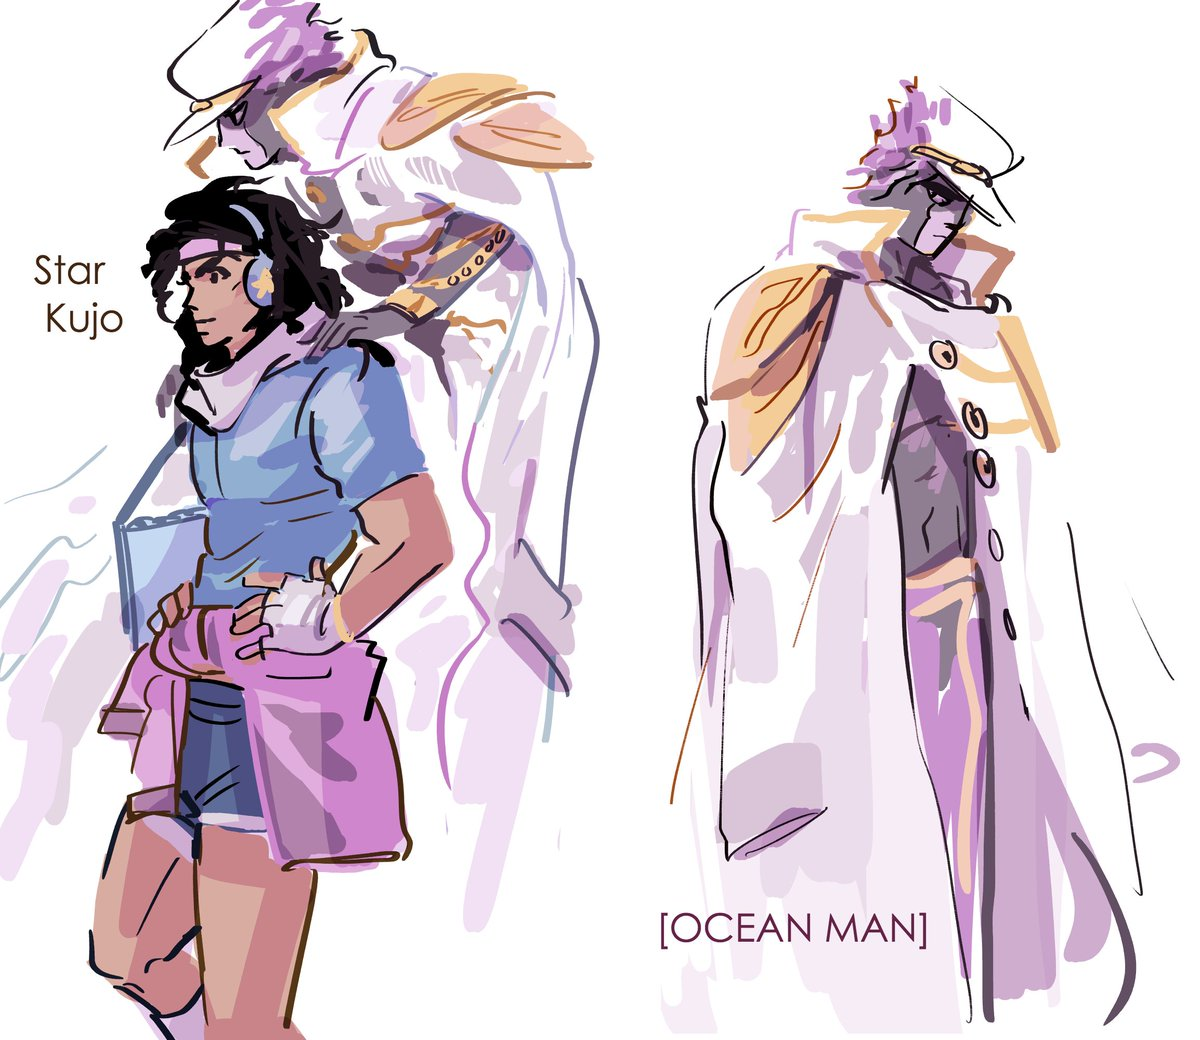 mcfreaking losing it on star and oceanman for standswap mcfreaking losing it on star and oceanman for standswap thing big shouty friend and does this stand ever talk t co e0hhv79fbr